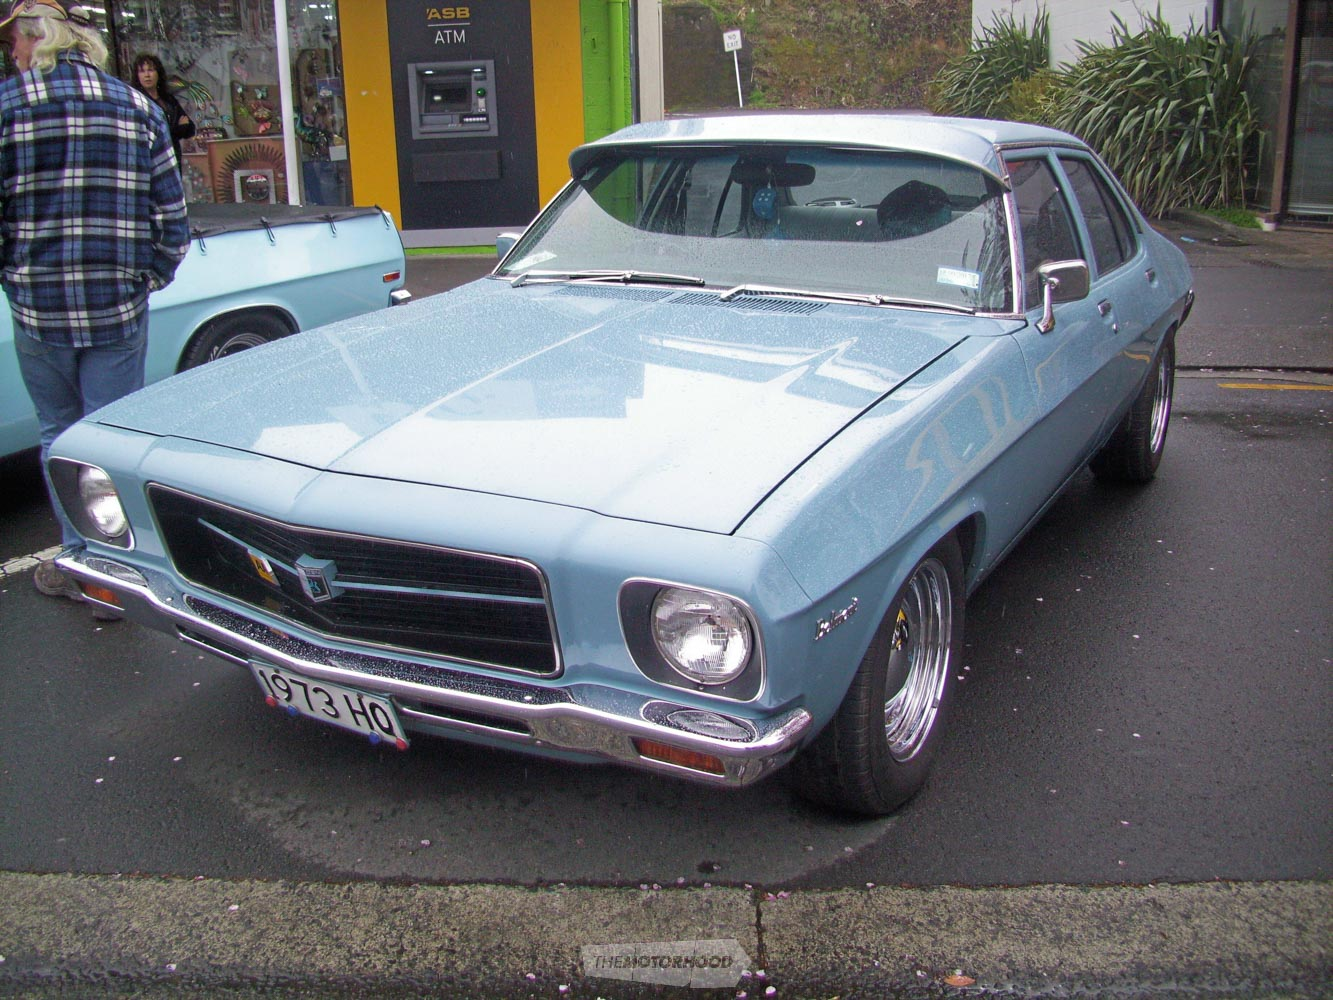 Clinton Tau owns this 1973 HQ Holden Belmonty and is also a member of the GM Enthusiast club.jpg